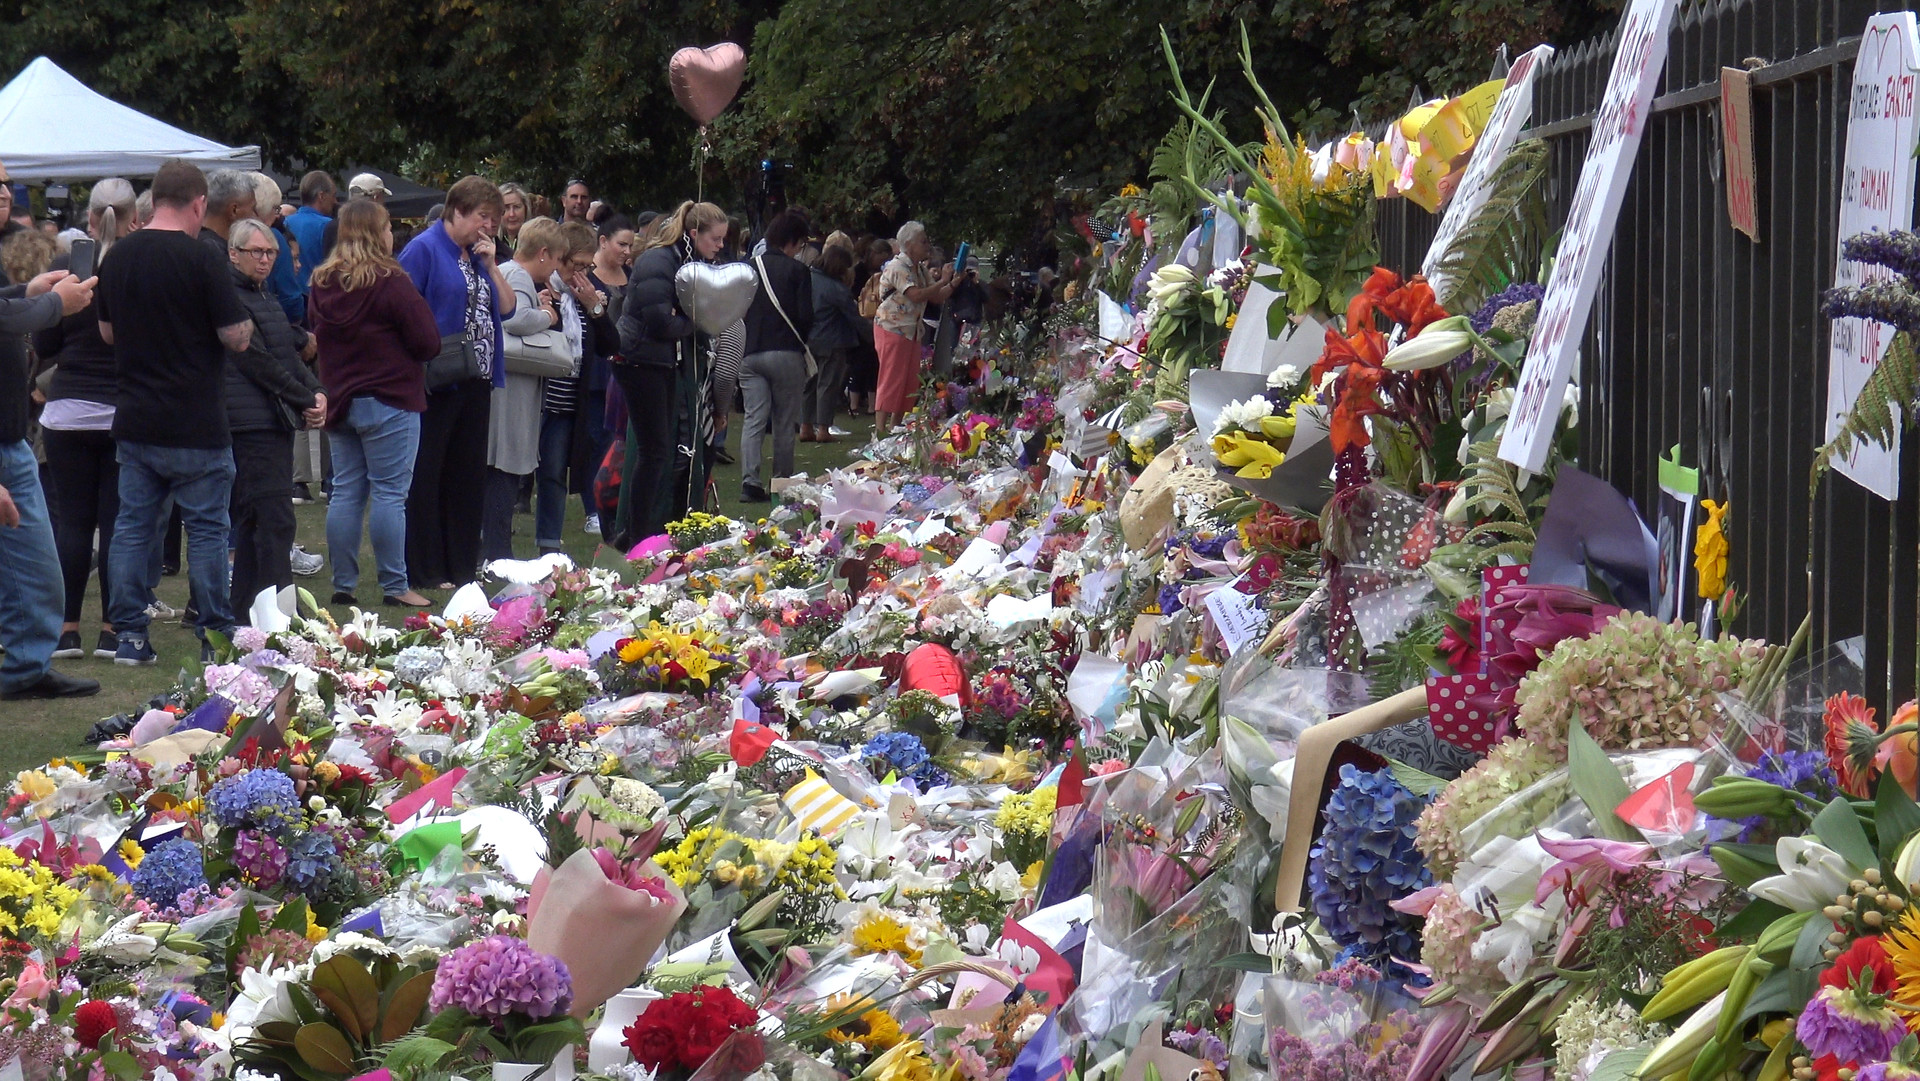 Christchurch Shootings Memorials